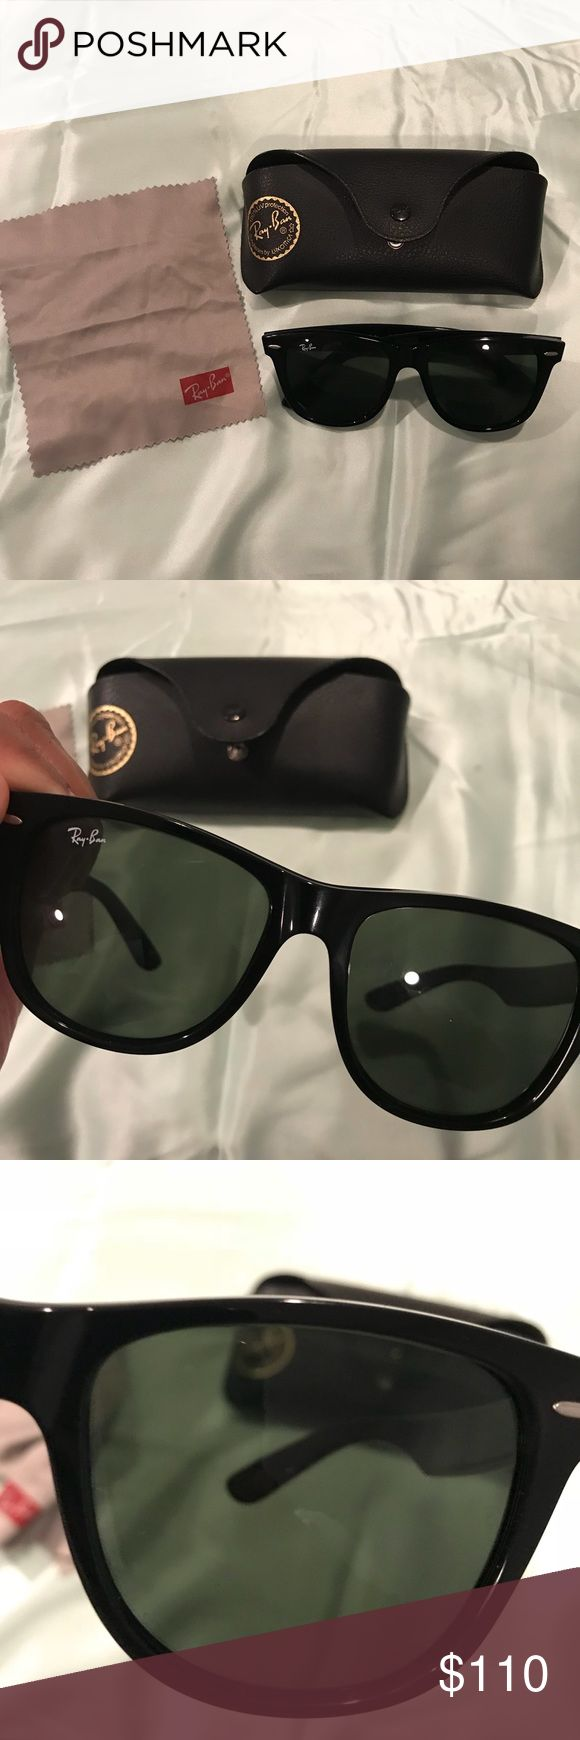 Ray Ban Wayfarer Ray Ban wayfarer sunglasses rb2140 black frame/polarized green almost brand new NO scratches comes with original case Ray-Ban Accessories Sunglasses